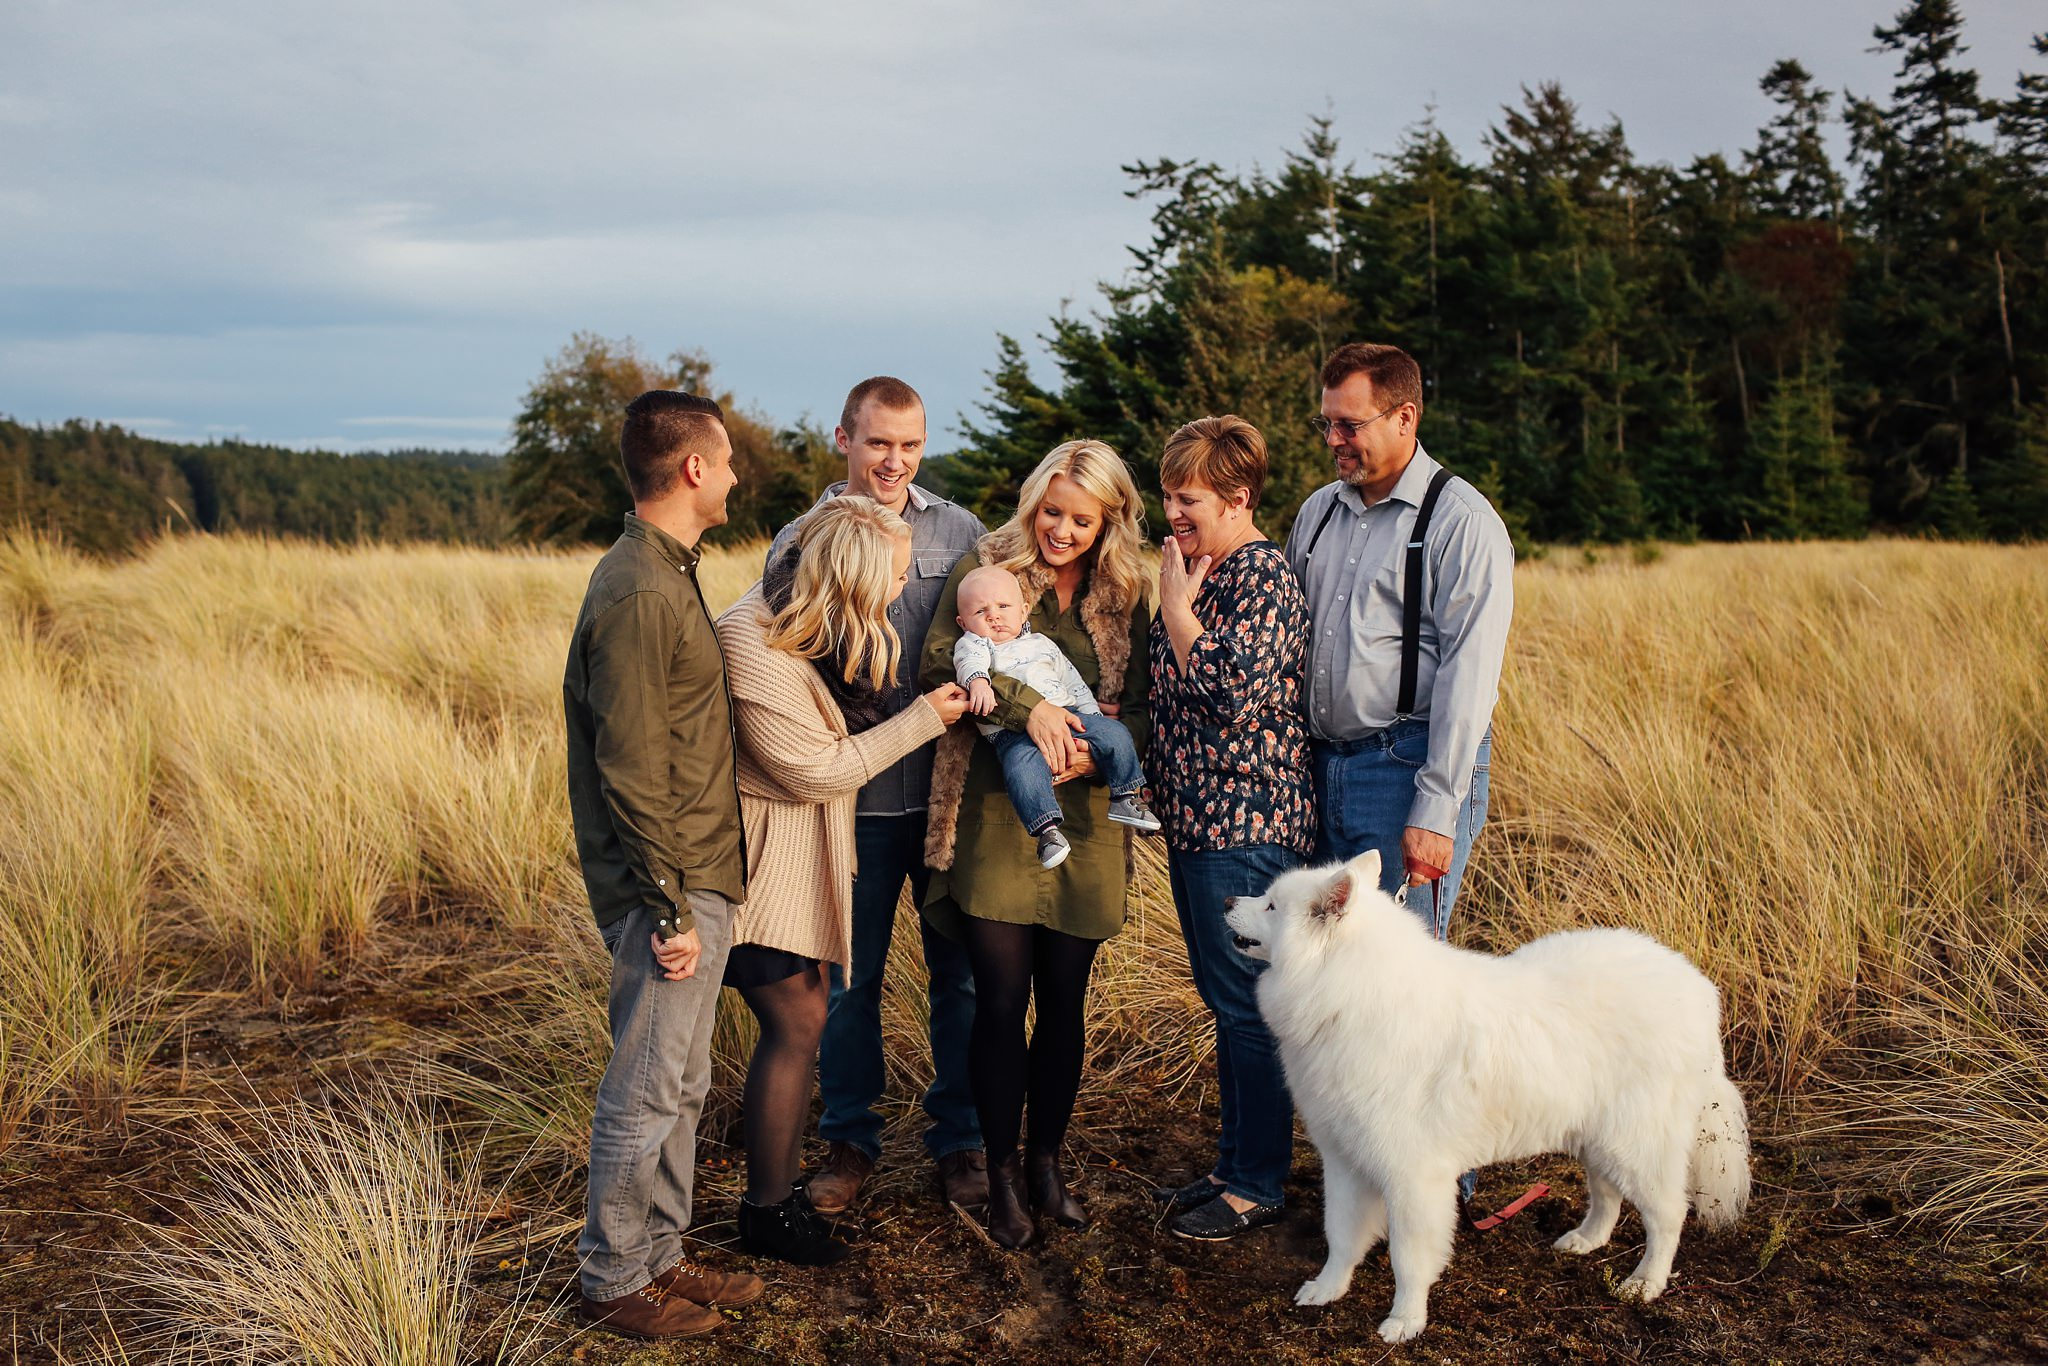 Whidbey-Island-Family-Photographer-Kara-Chappell-Photography_1348.jpg